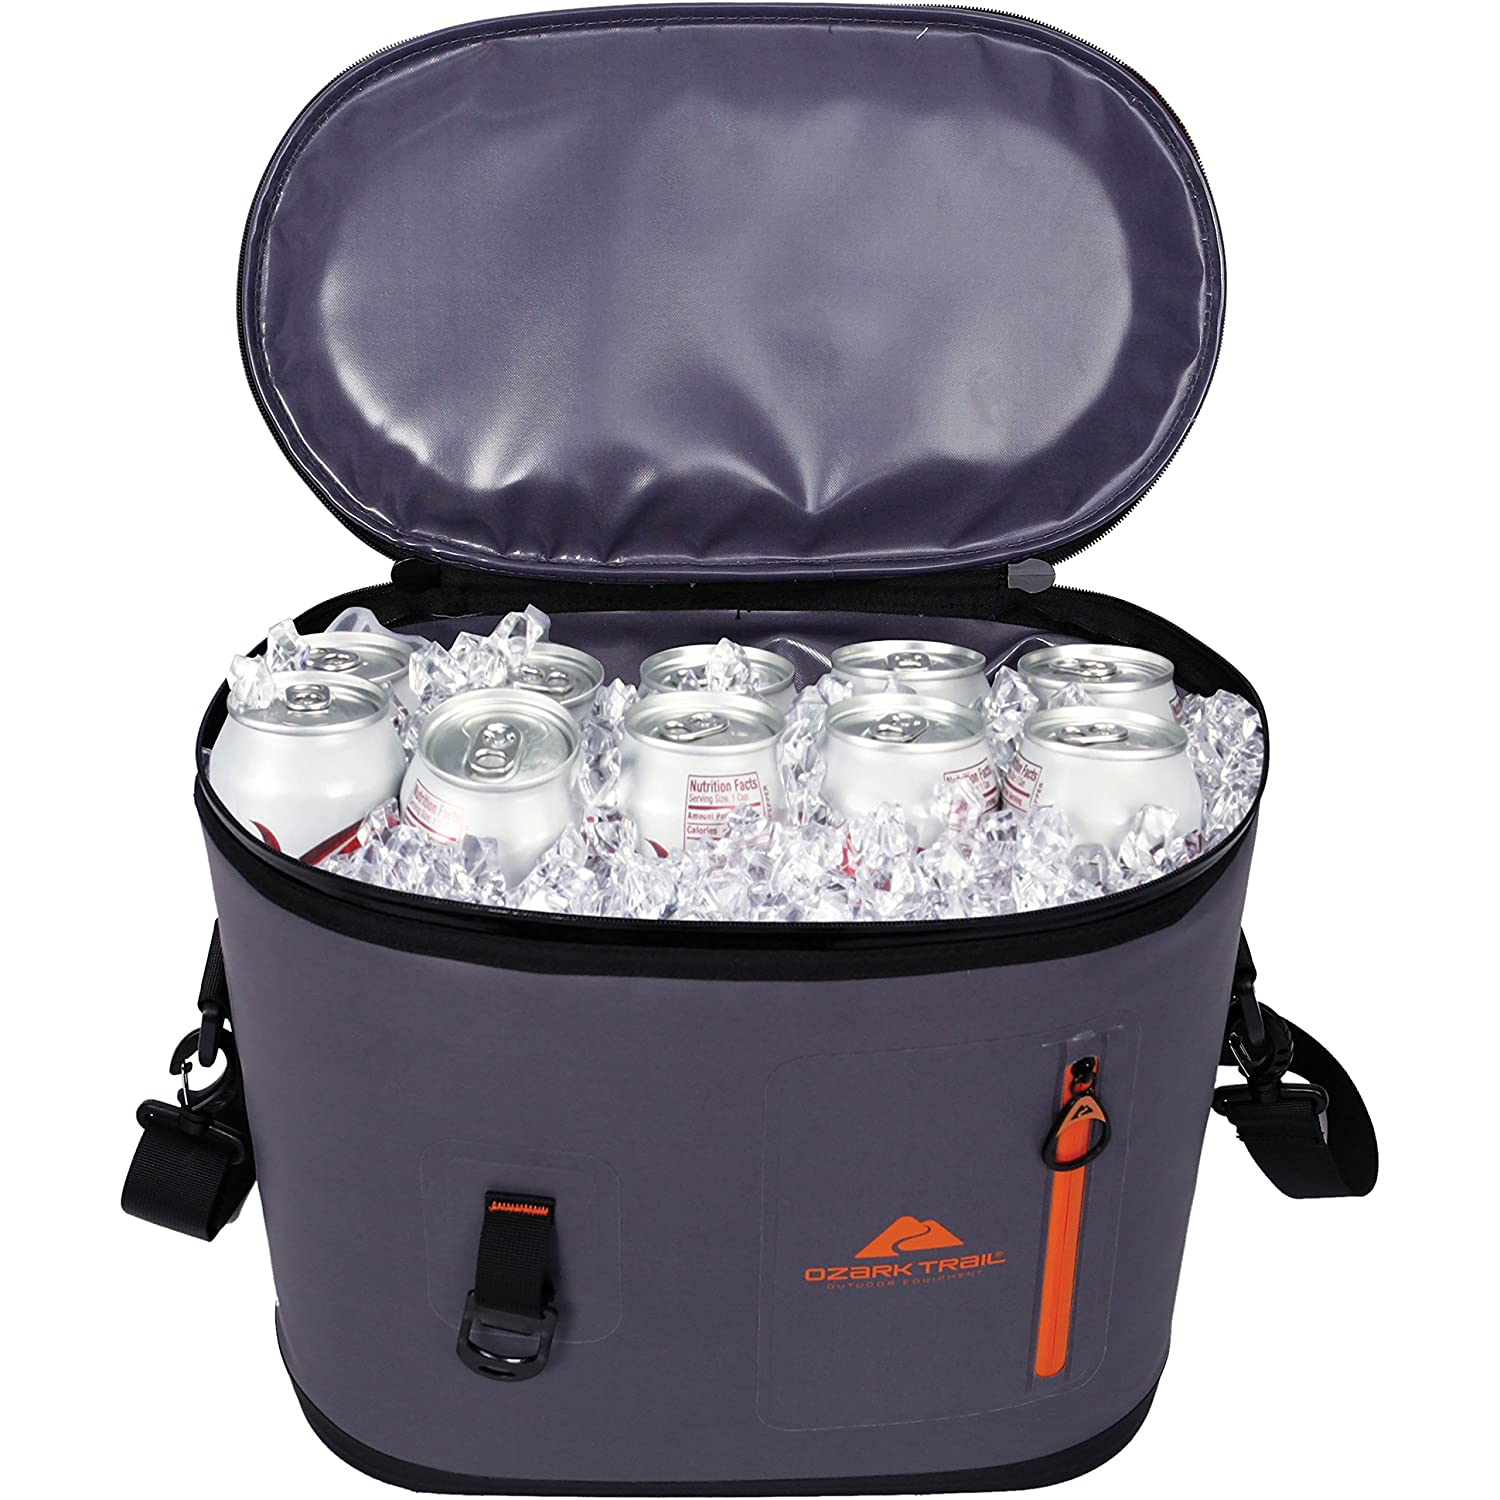 Ozark Trail Premium and Spacious 24-Can Camping and Outdoor Cooler, Dark Grey with Orange Accent, with Front Pocket and Bottle Opener Attachment Point!